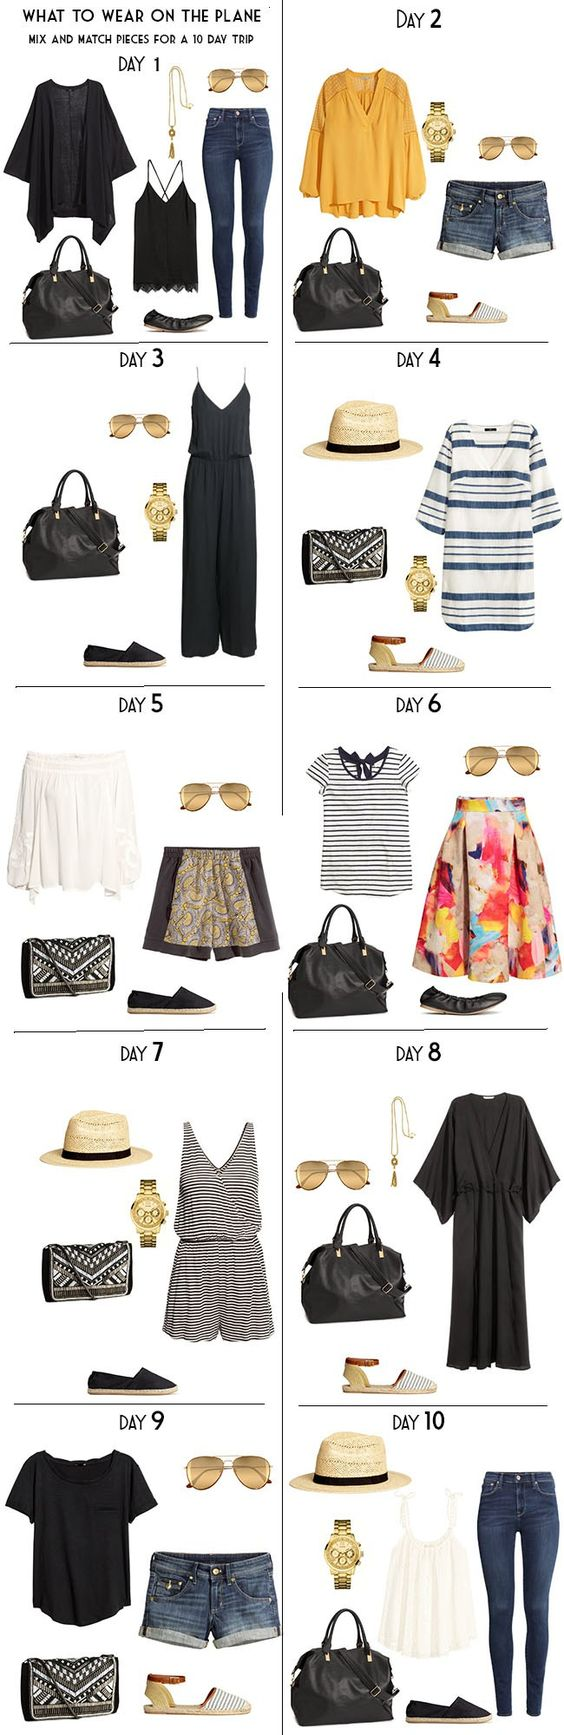 10 Days of outfits in Greece + full packing list here: http://livelovesara.com/2015/06/greece-packing-list/: